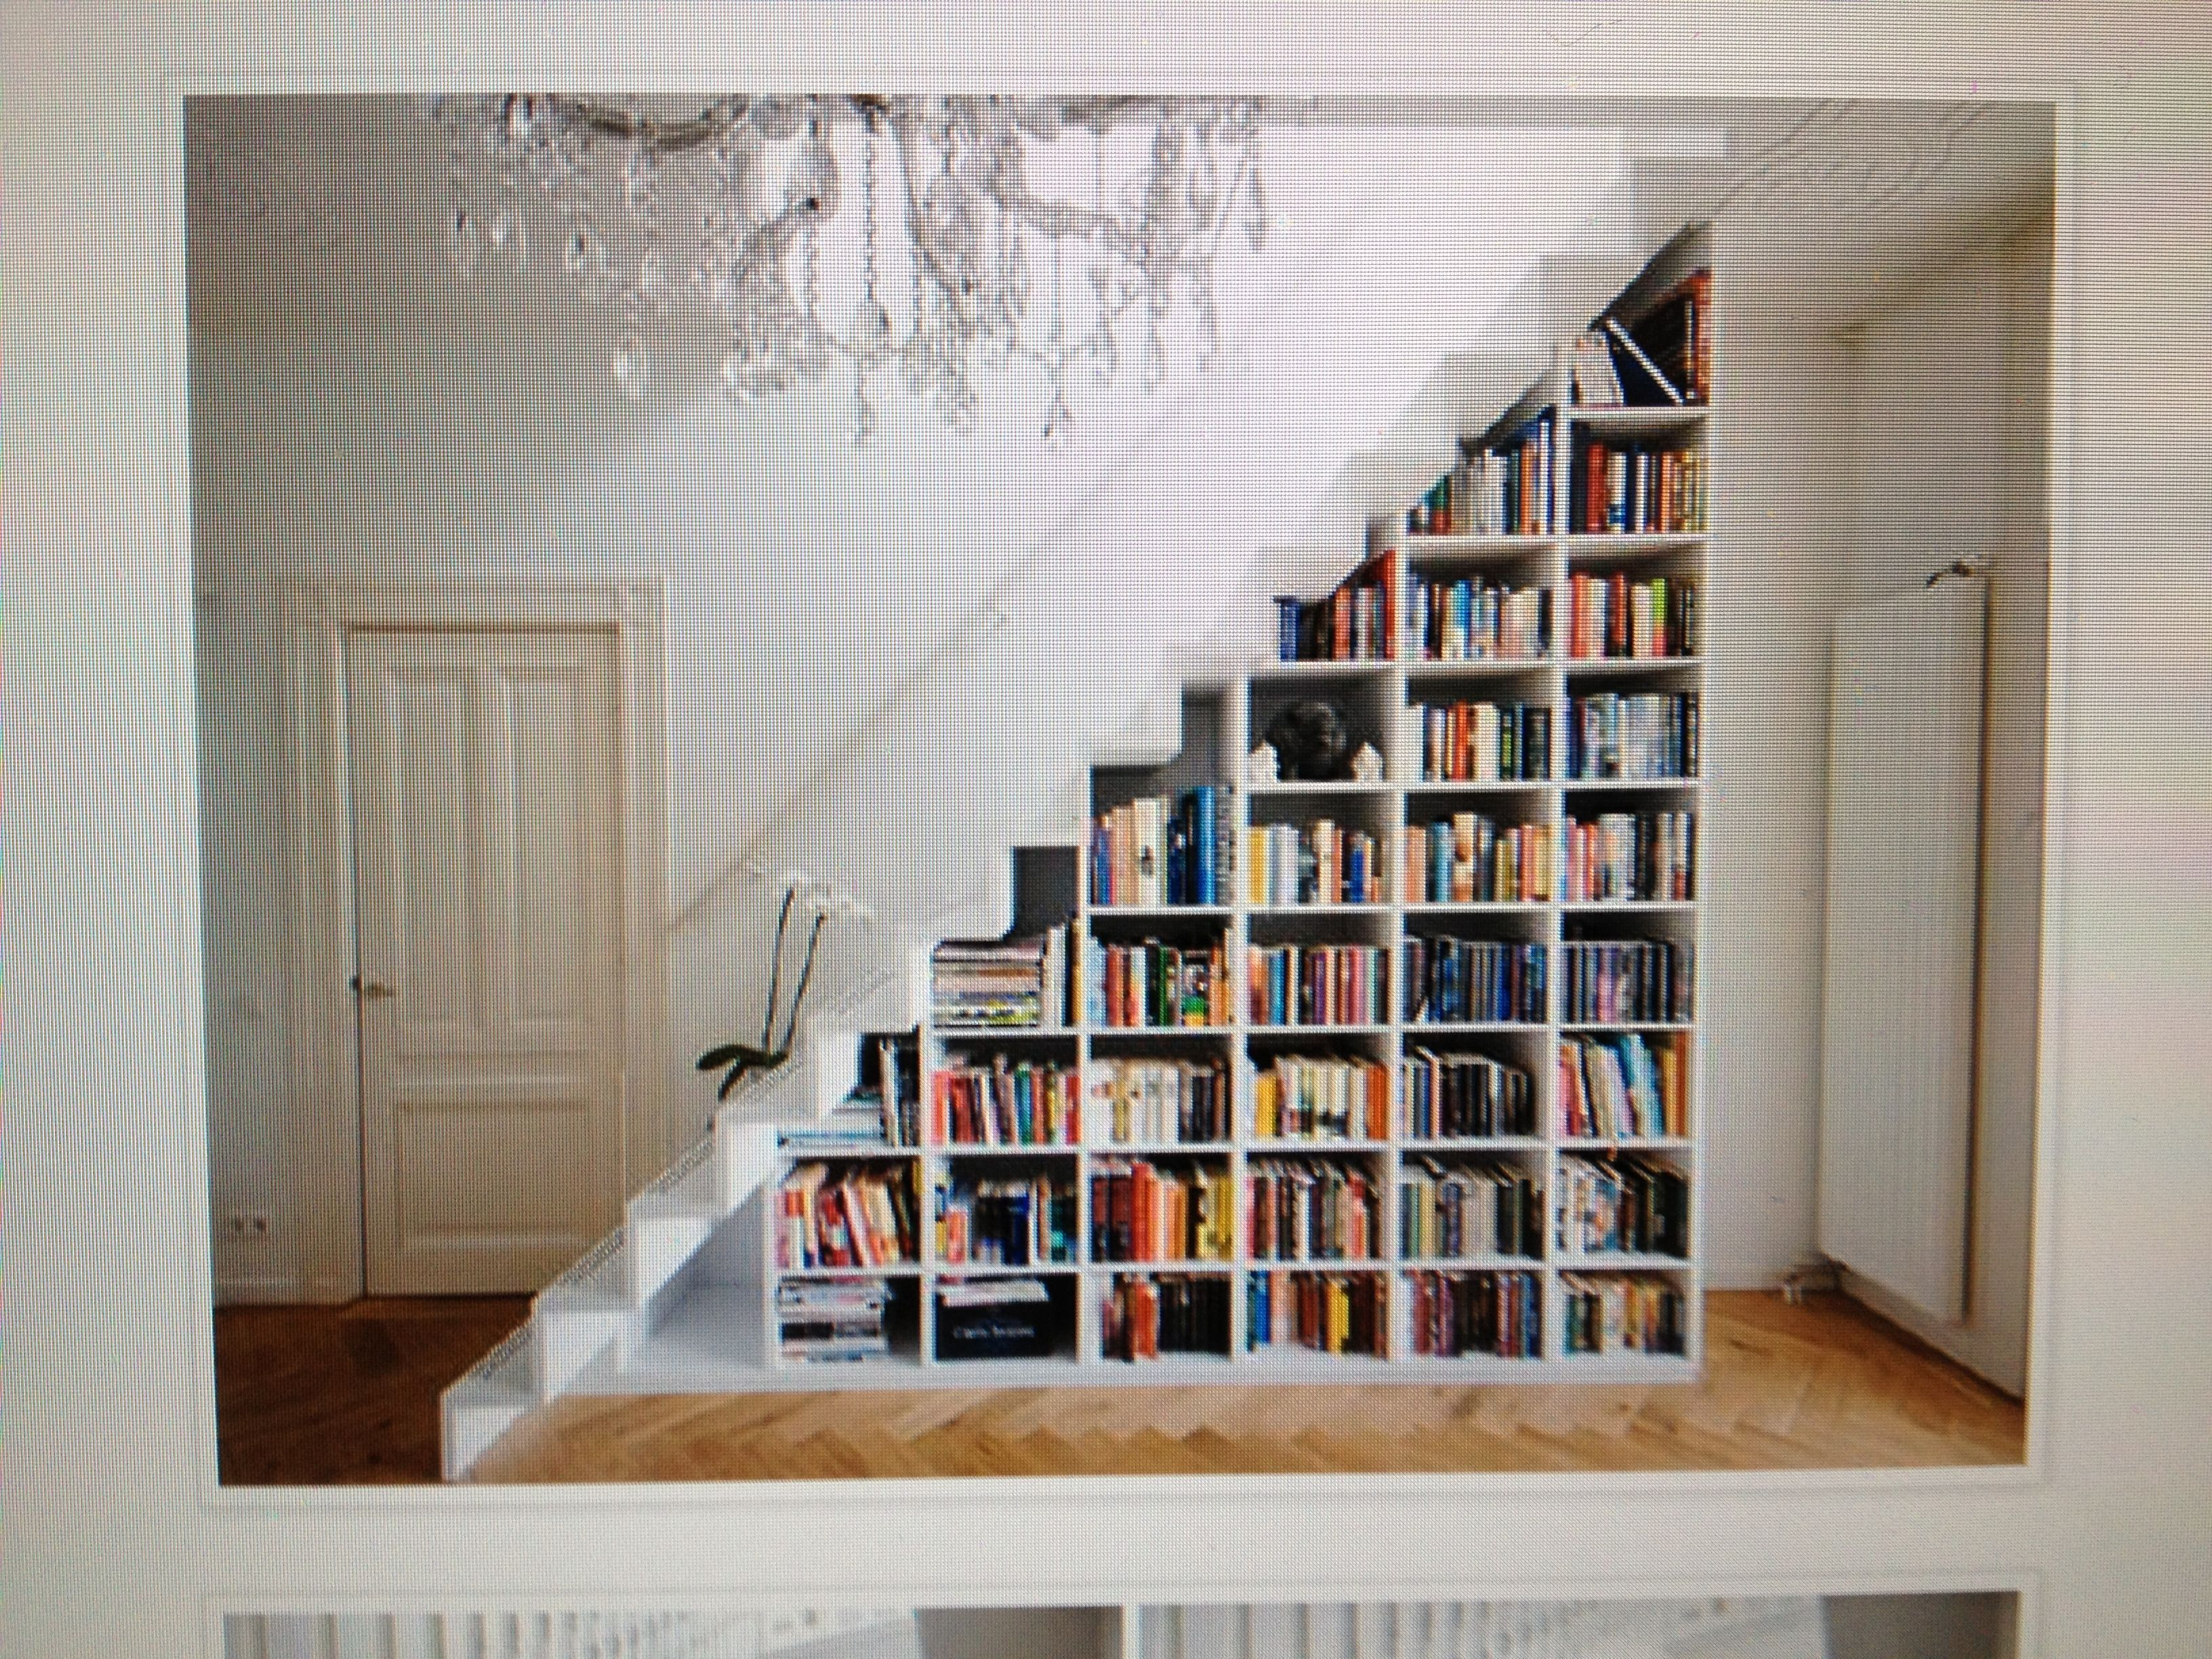 Stair Step Bookcase bookcase under stairs, but bigger sections that are see through